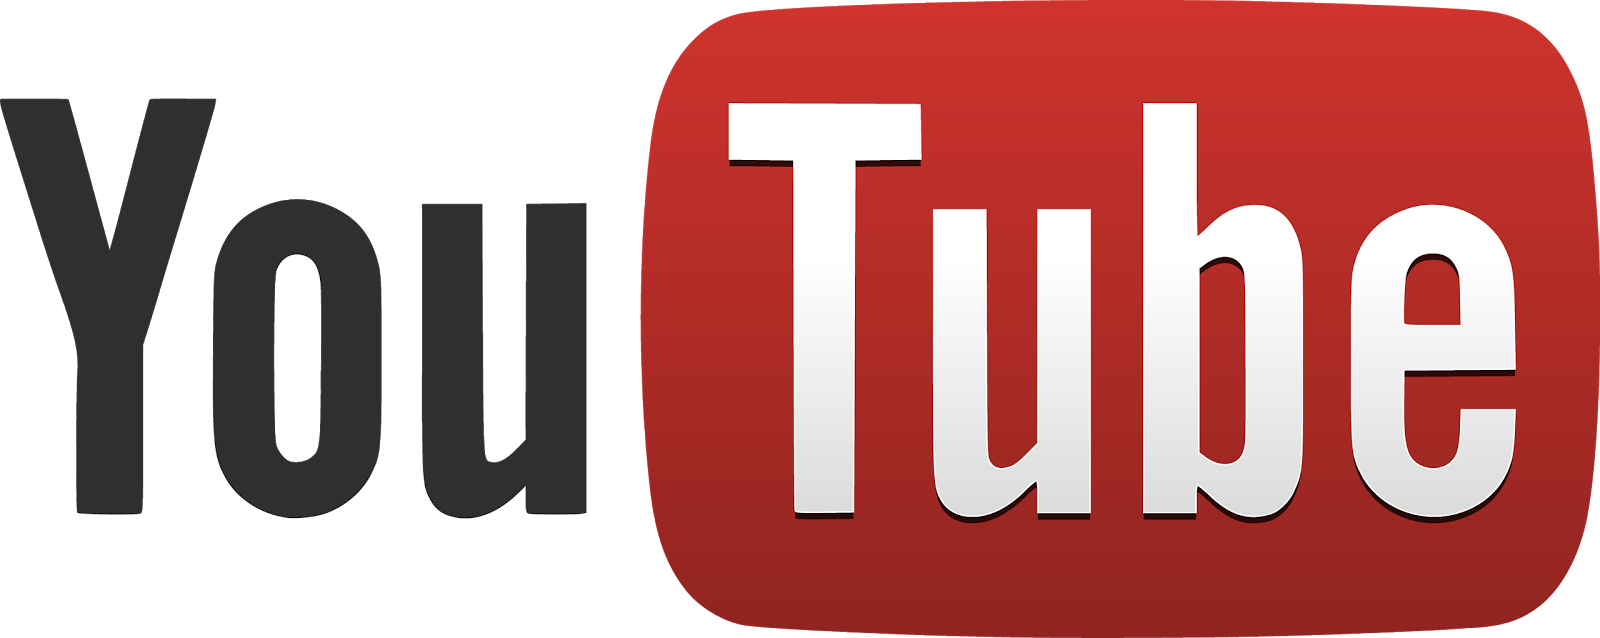 Download youtube videos using opera mini or opera browsers web many people use mobile internet and almost all of them use opera mini to browse internet opera mini is a very fast and flexible mobile browser in present ccuart Choice Image